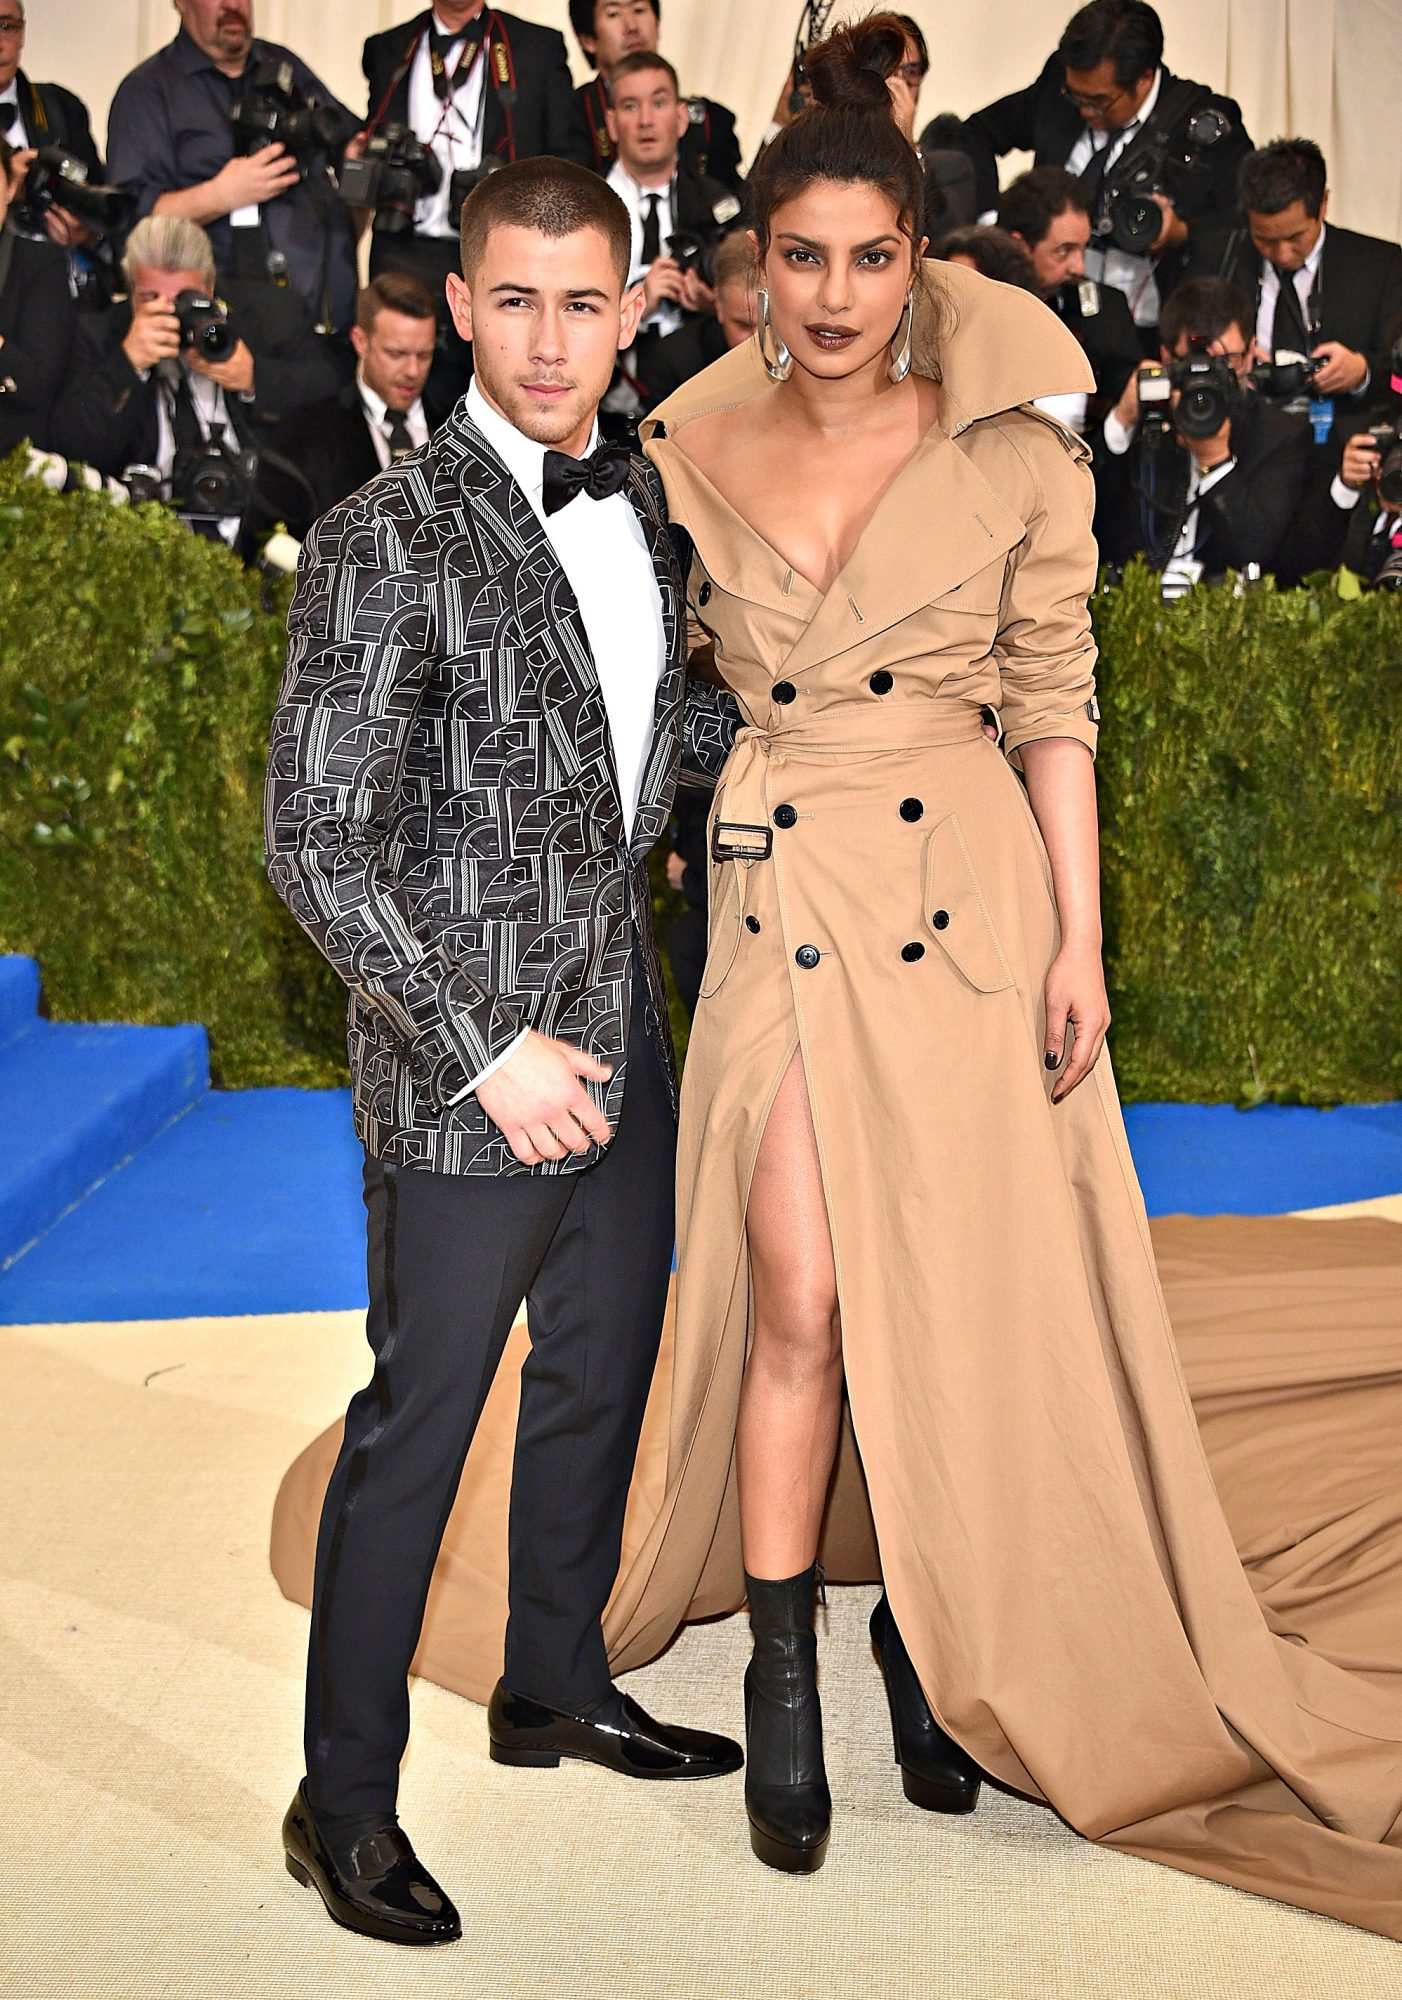 Nick Jonas and Priyanka Chopra Jonas